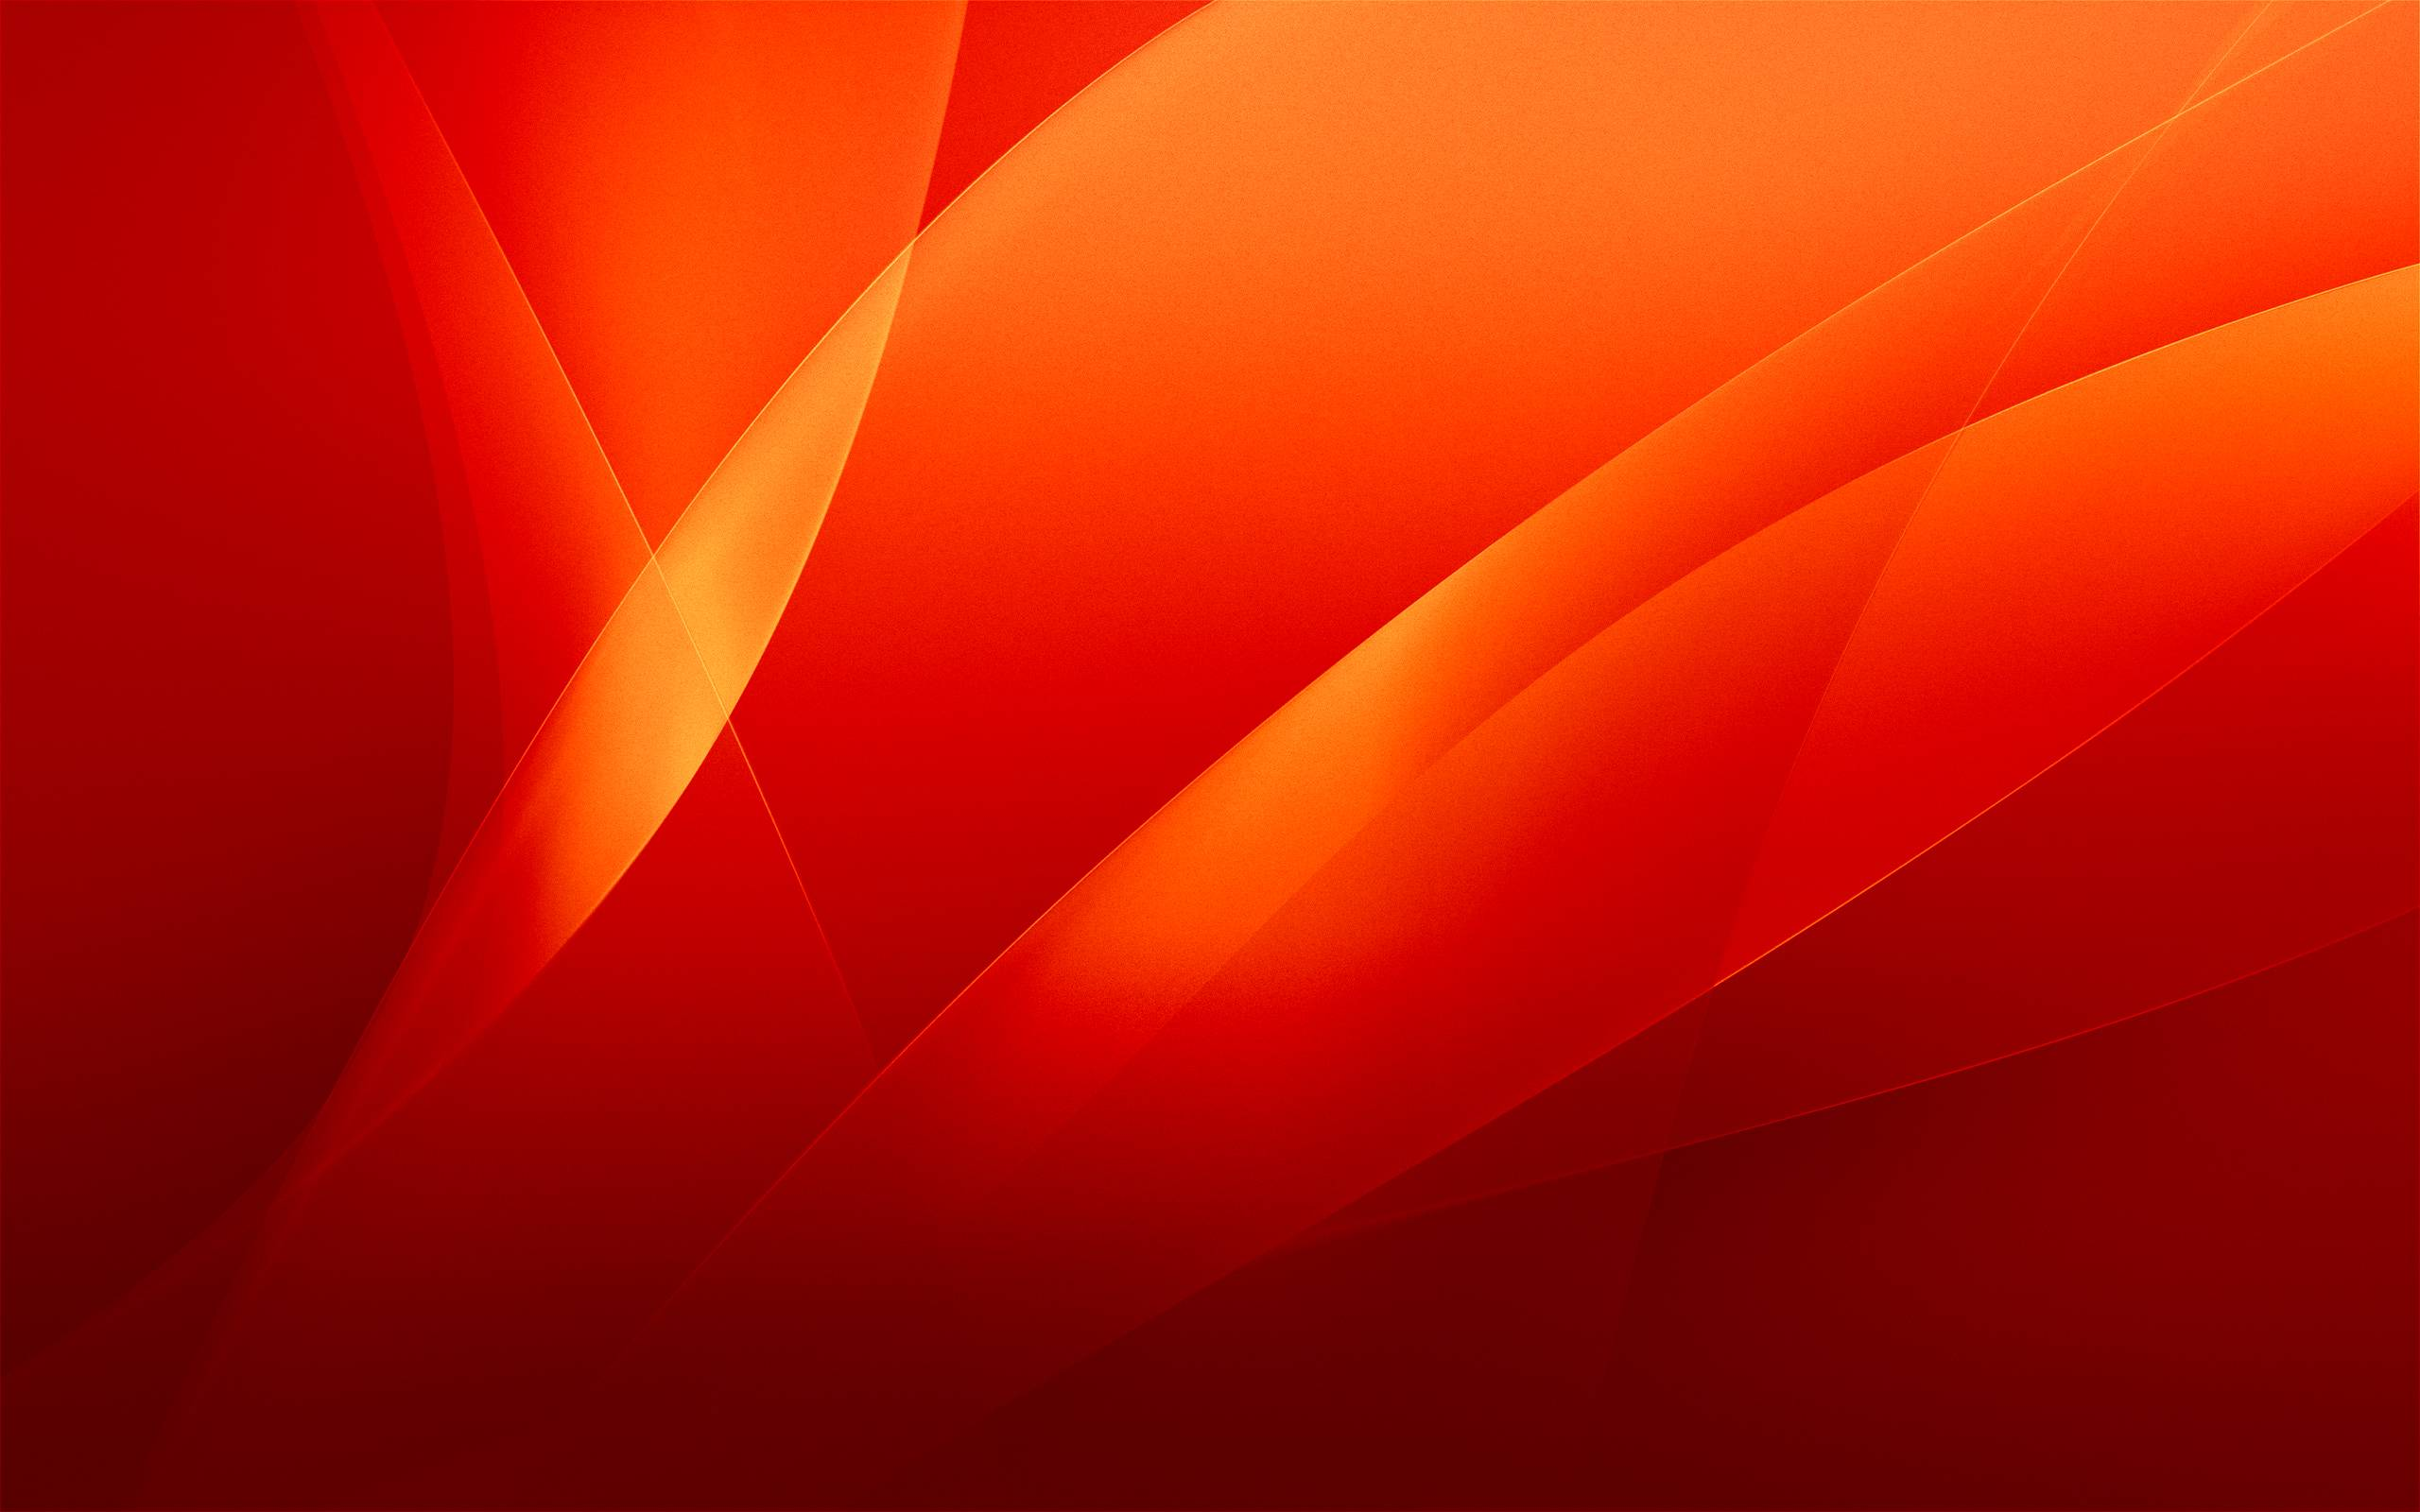 red backgrounds pictures